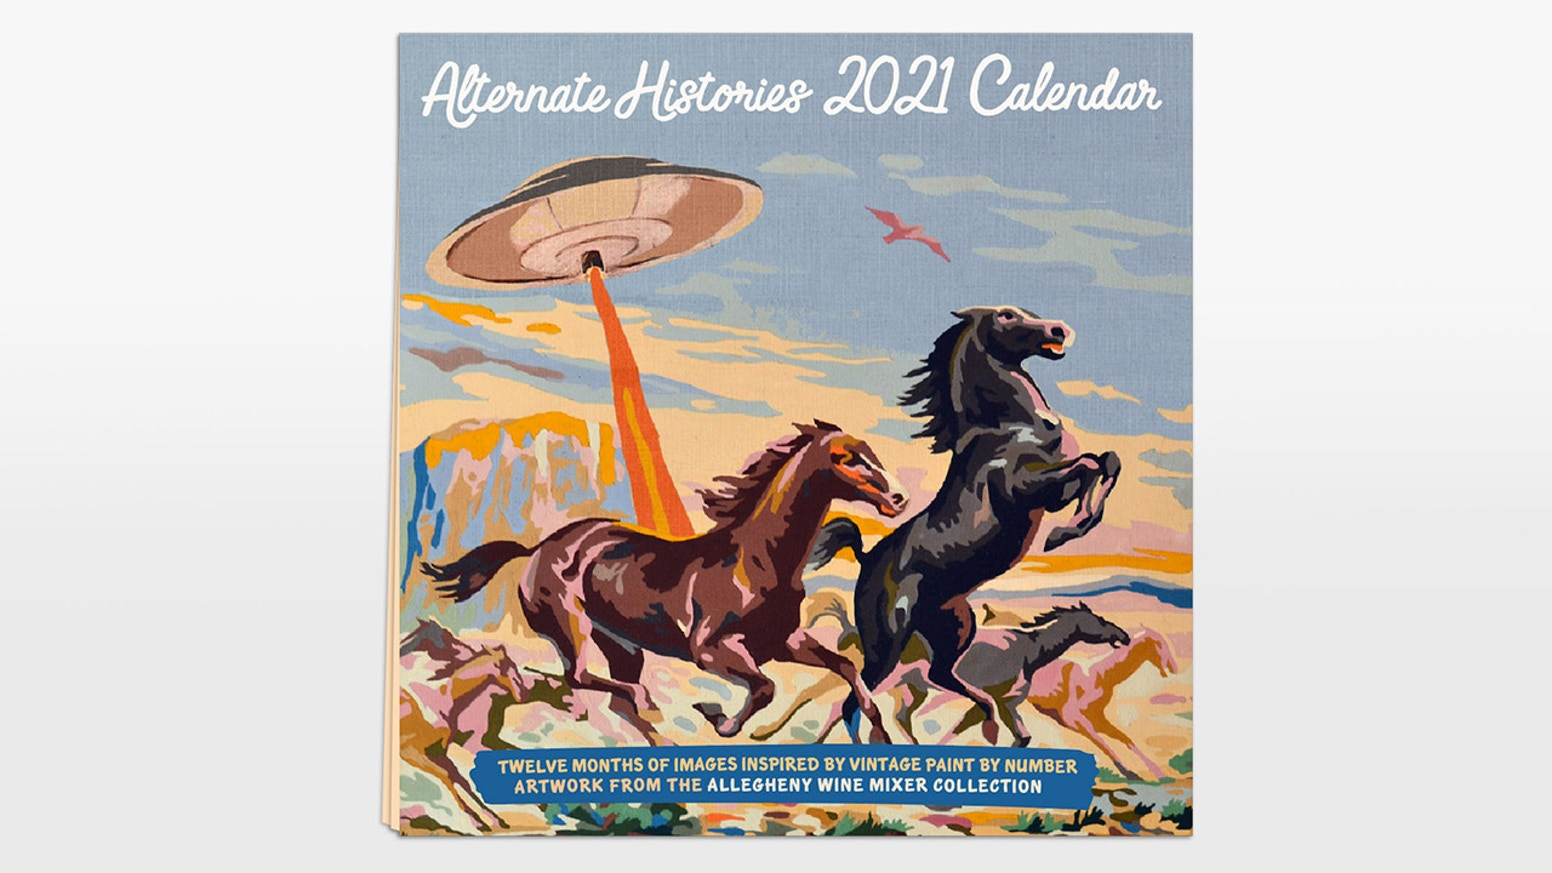 A monstrously fun calendar for 2021 inspired by vintage Paint by Numbers.